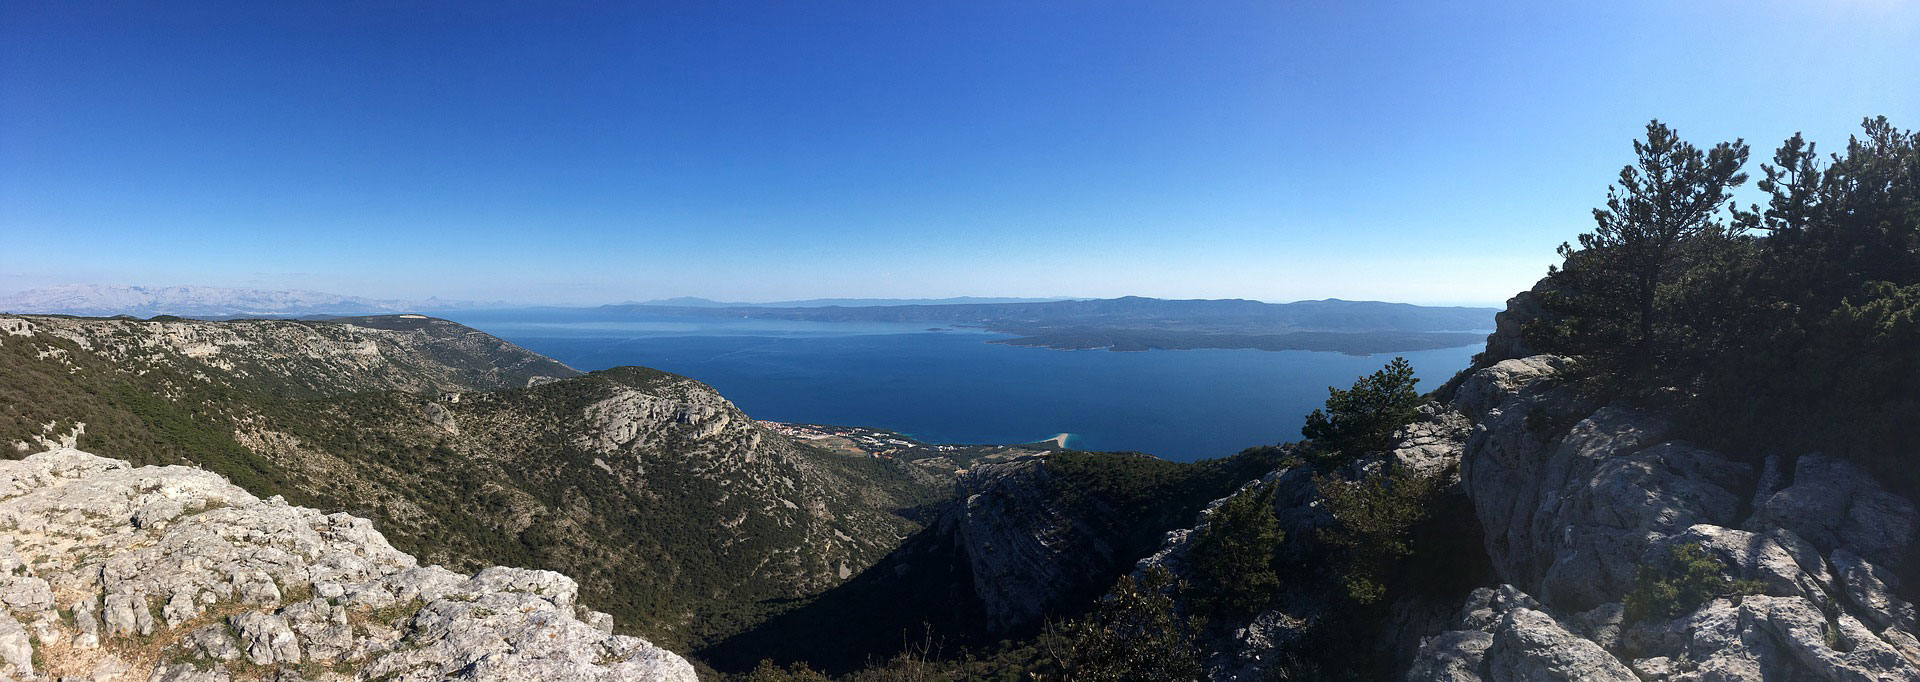 Island of Brac, view from Vidova Gora on Zlatni Rat beach